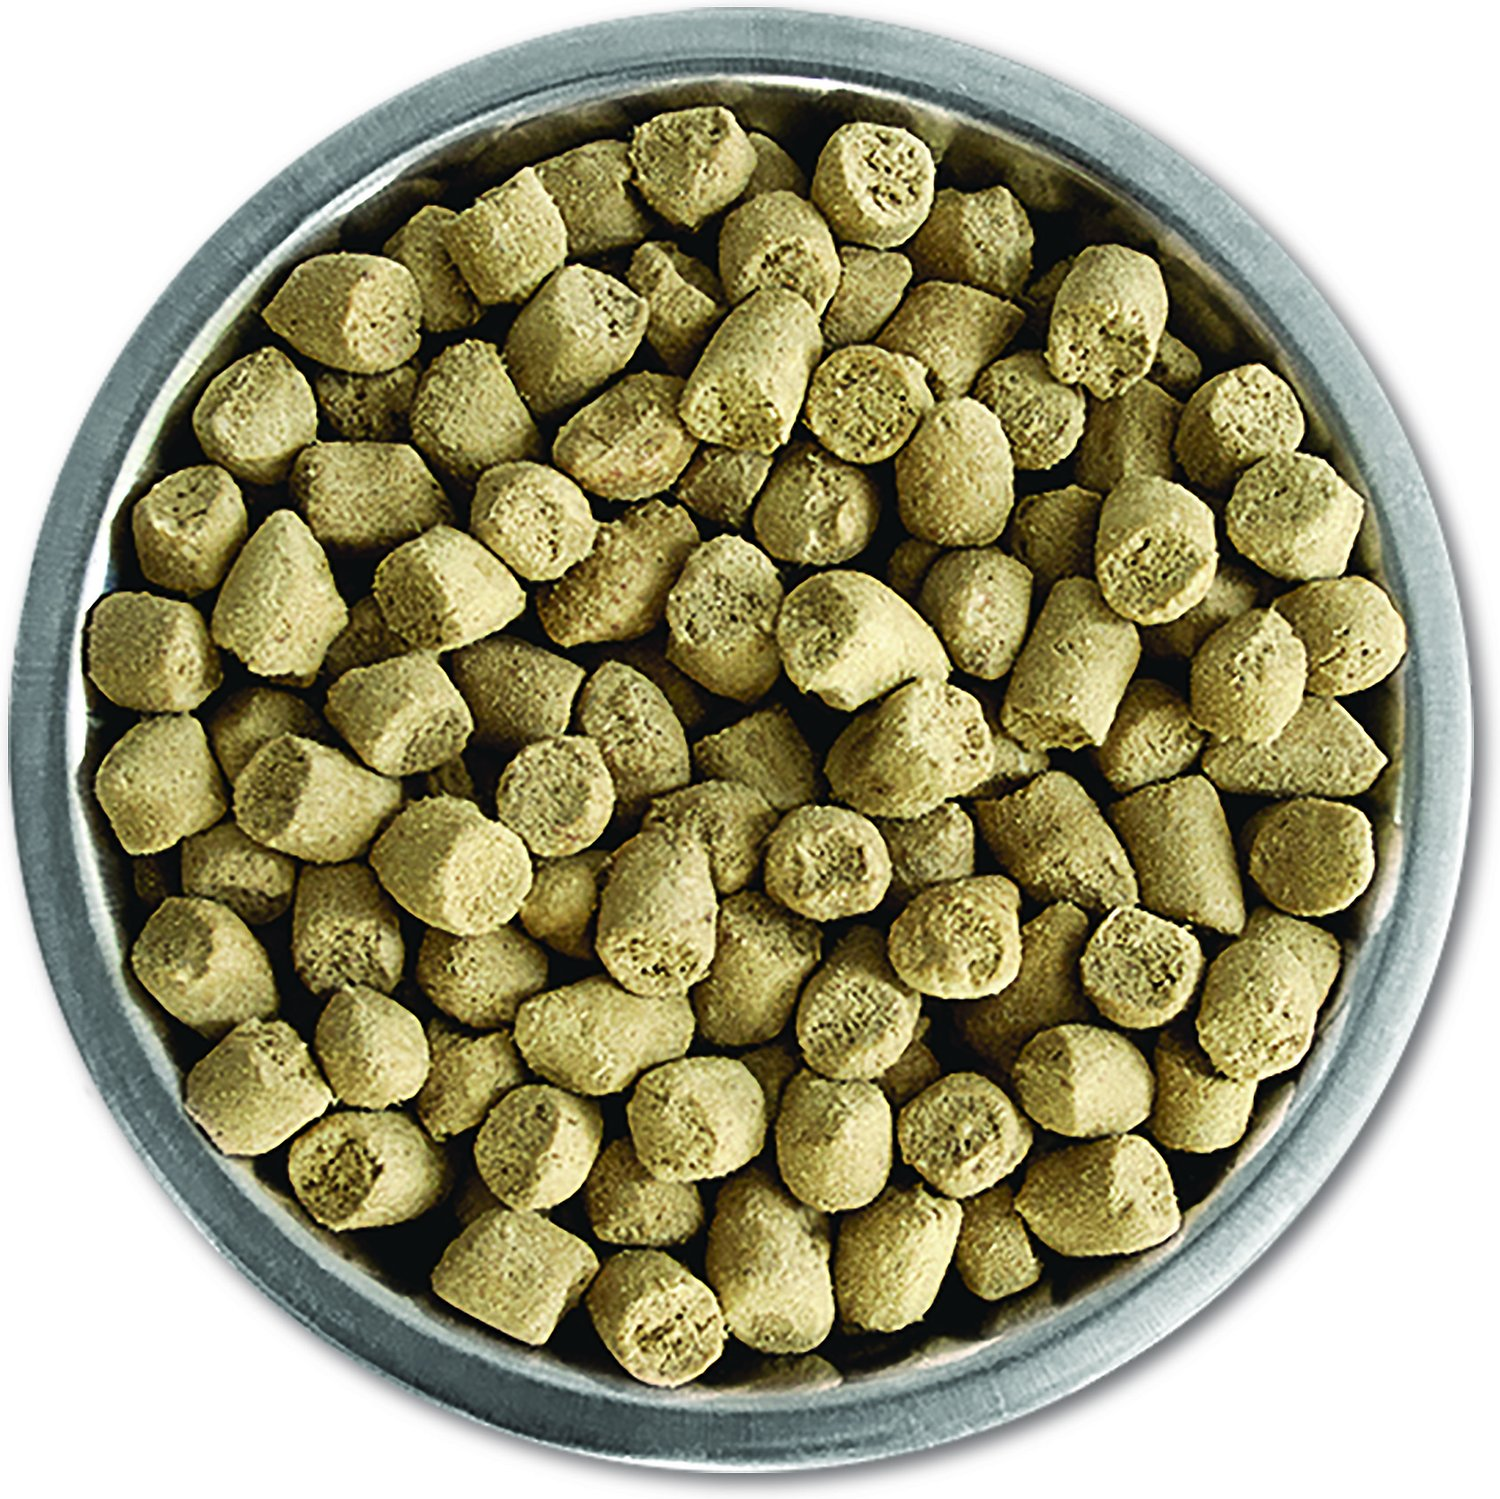 Where To Buy Backcountry Cat Food